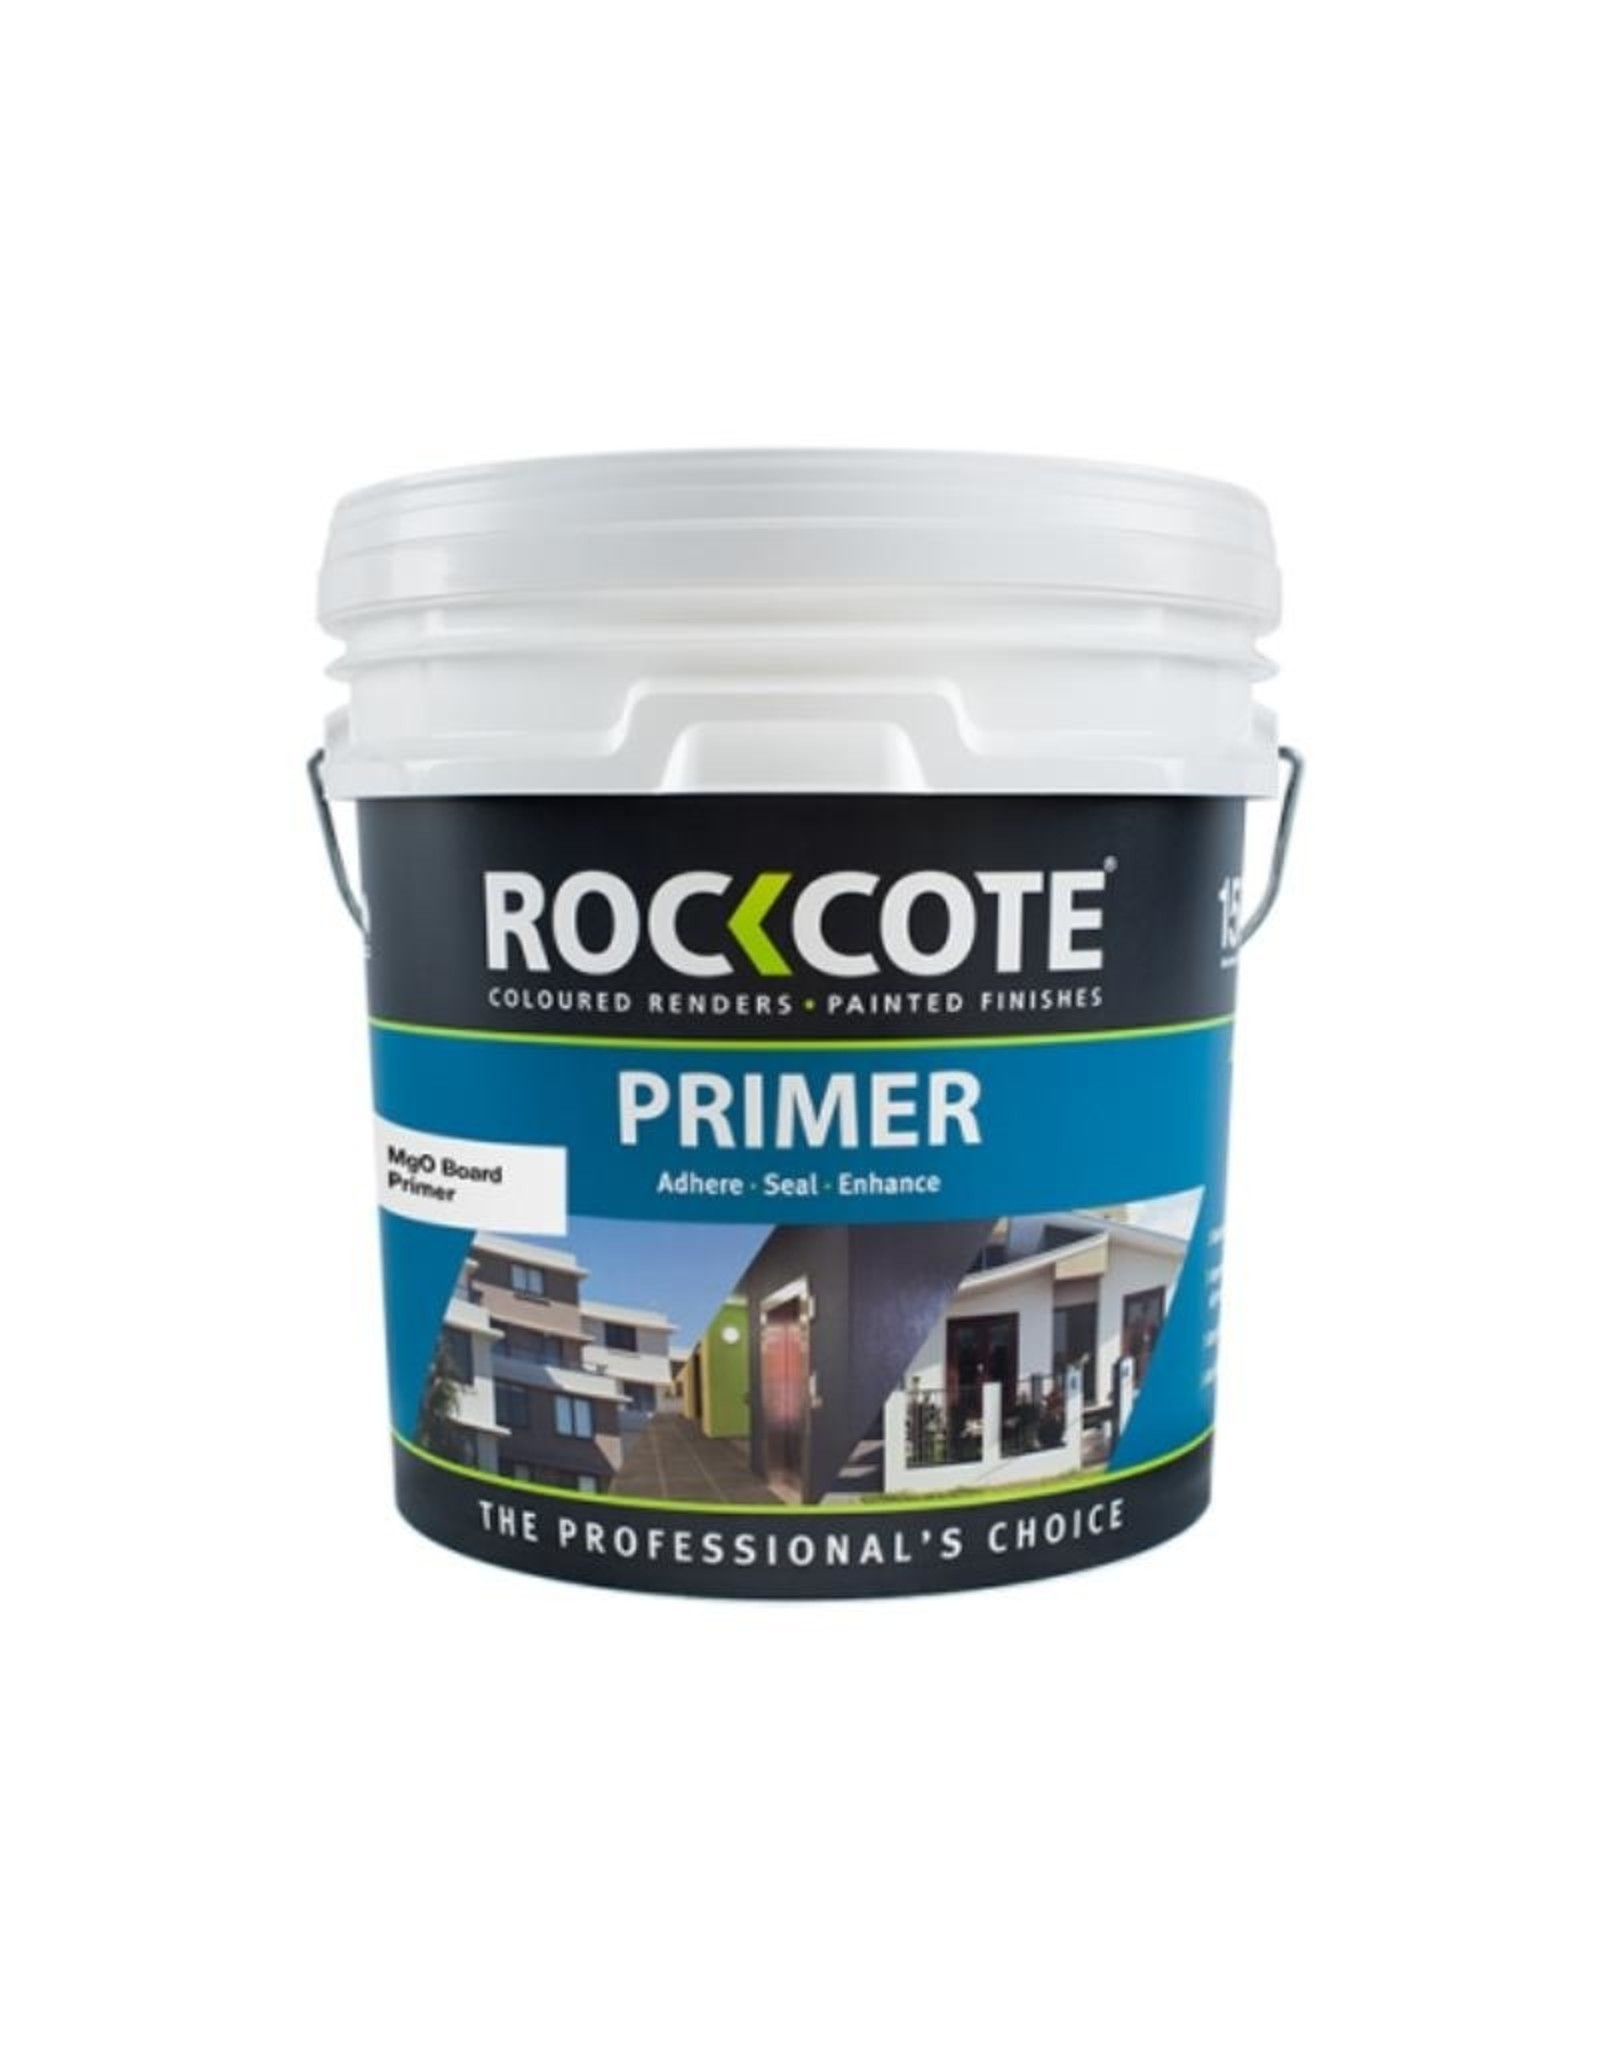 ROCKCOTE MGO Board Primer 15L - last of stock